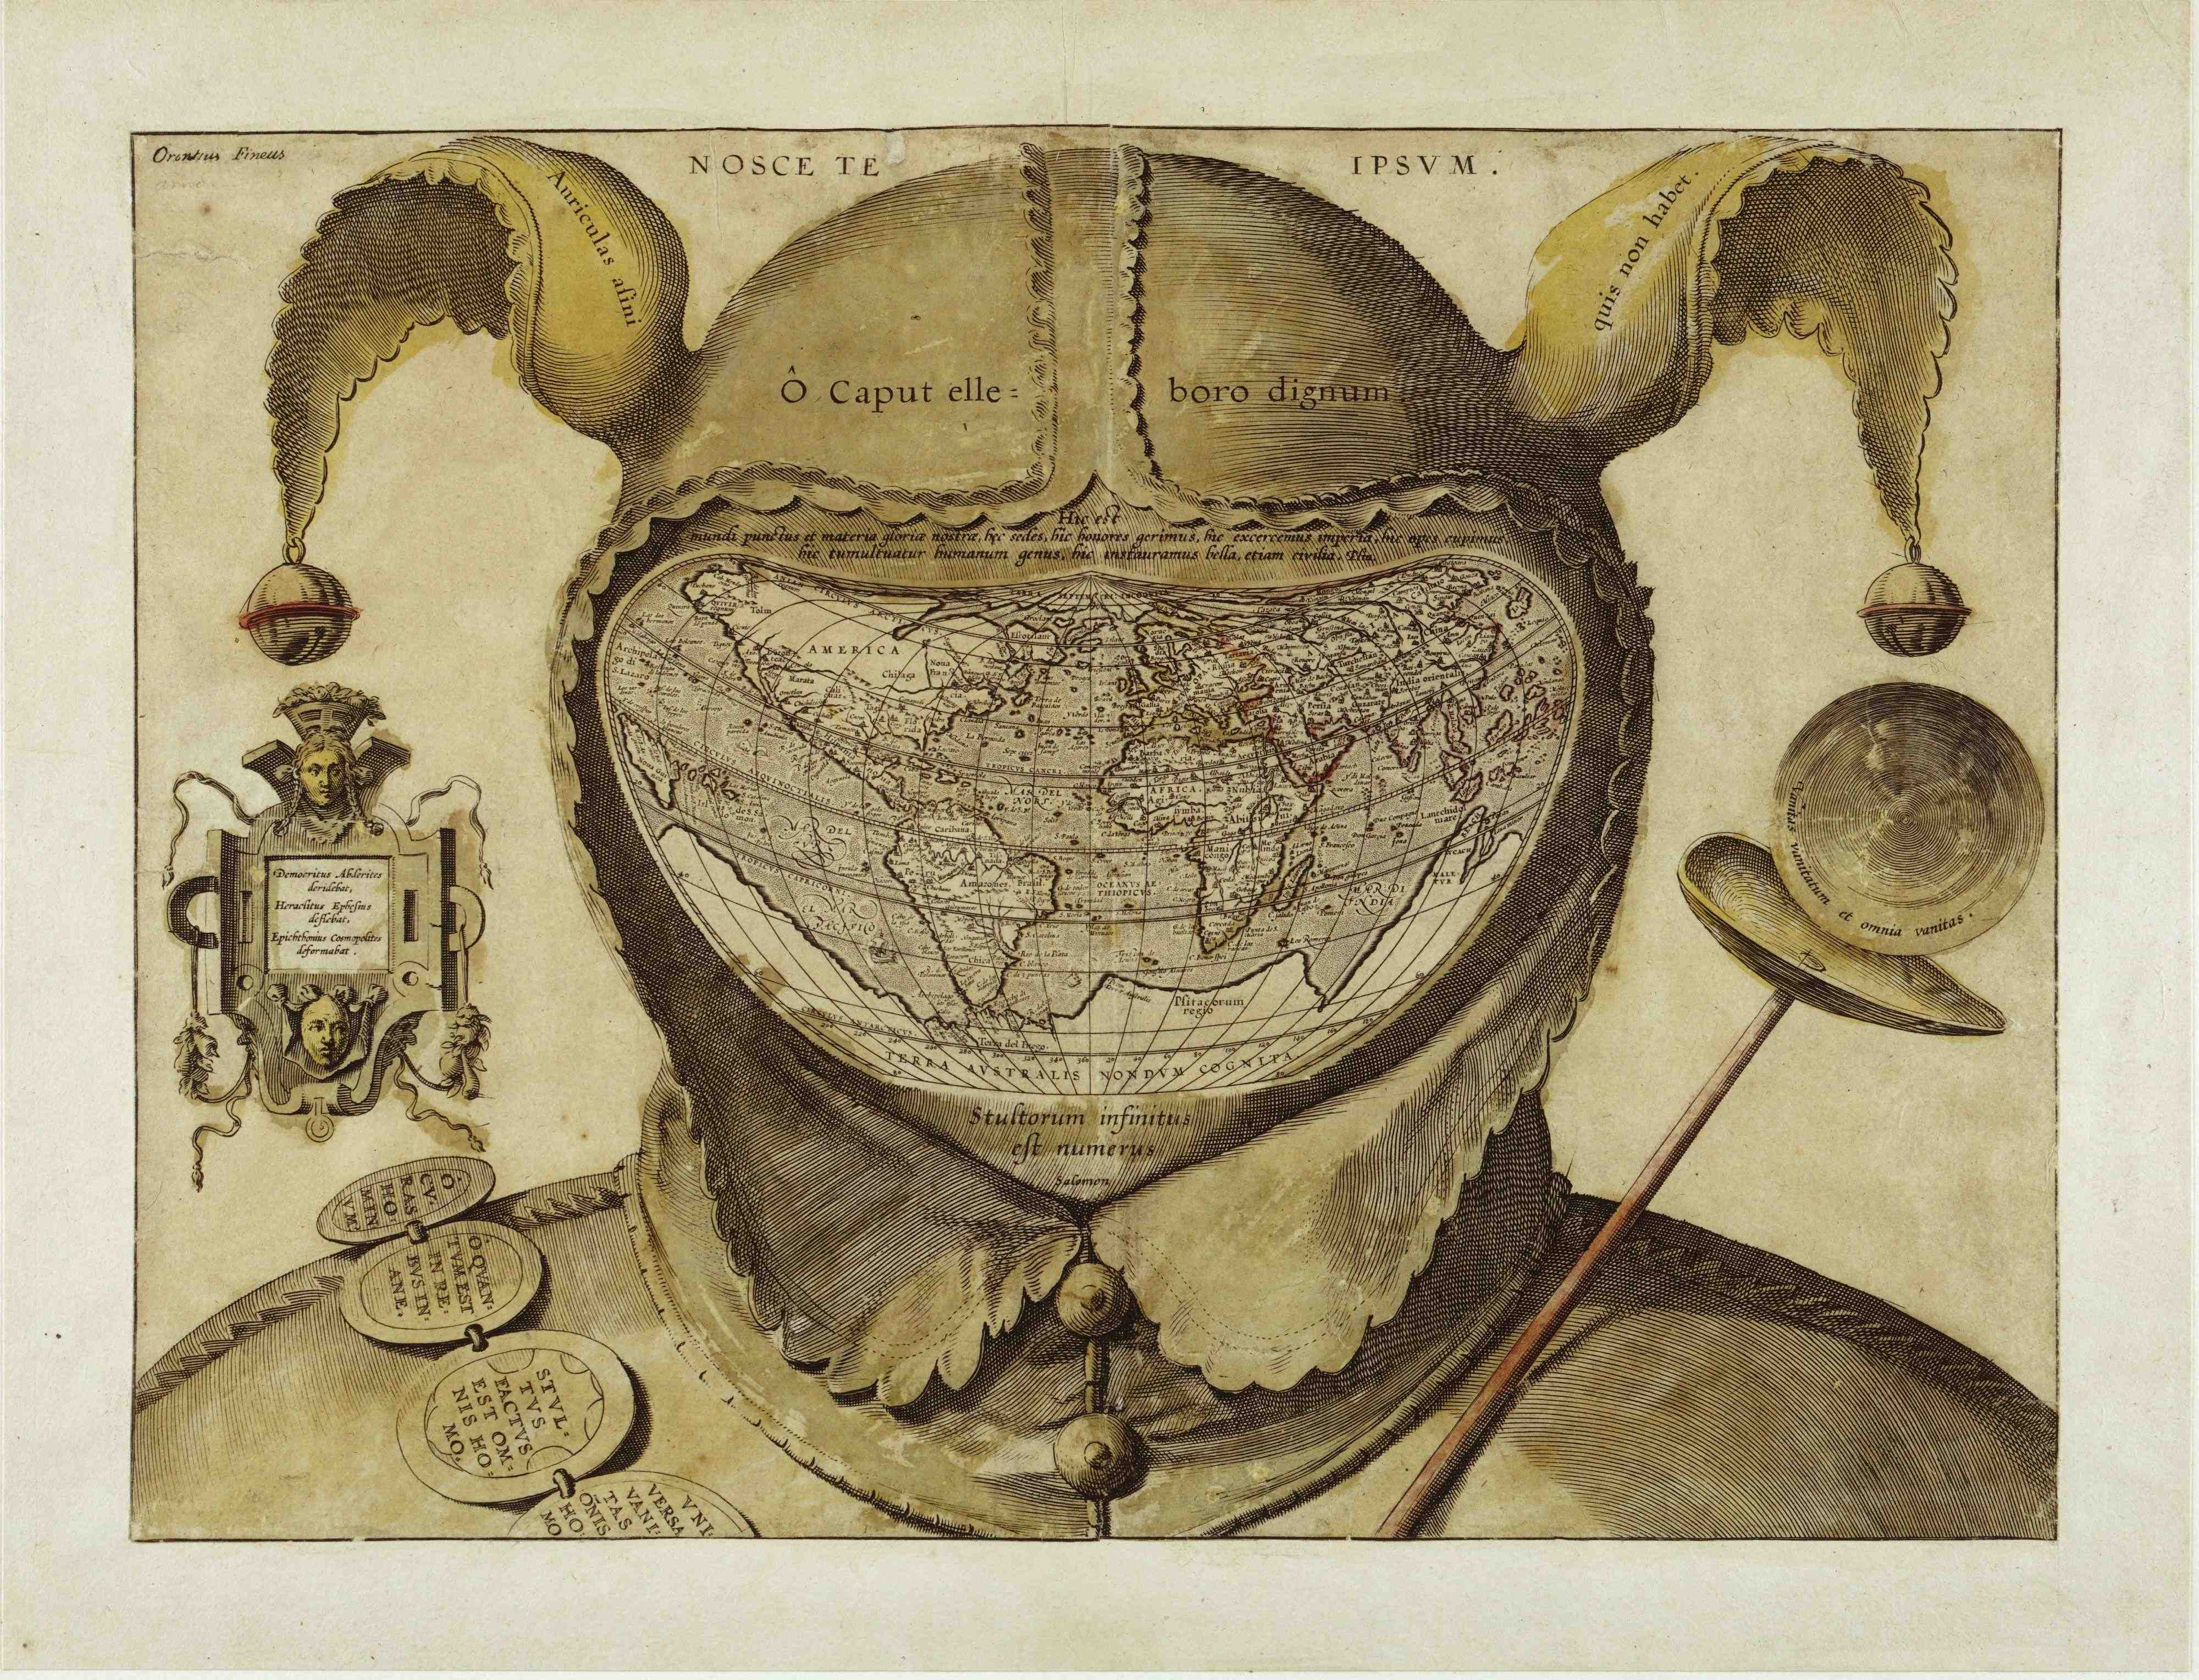 The Fool's Cap Map of the World, circa 1580-1590